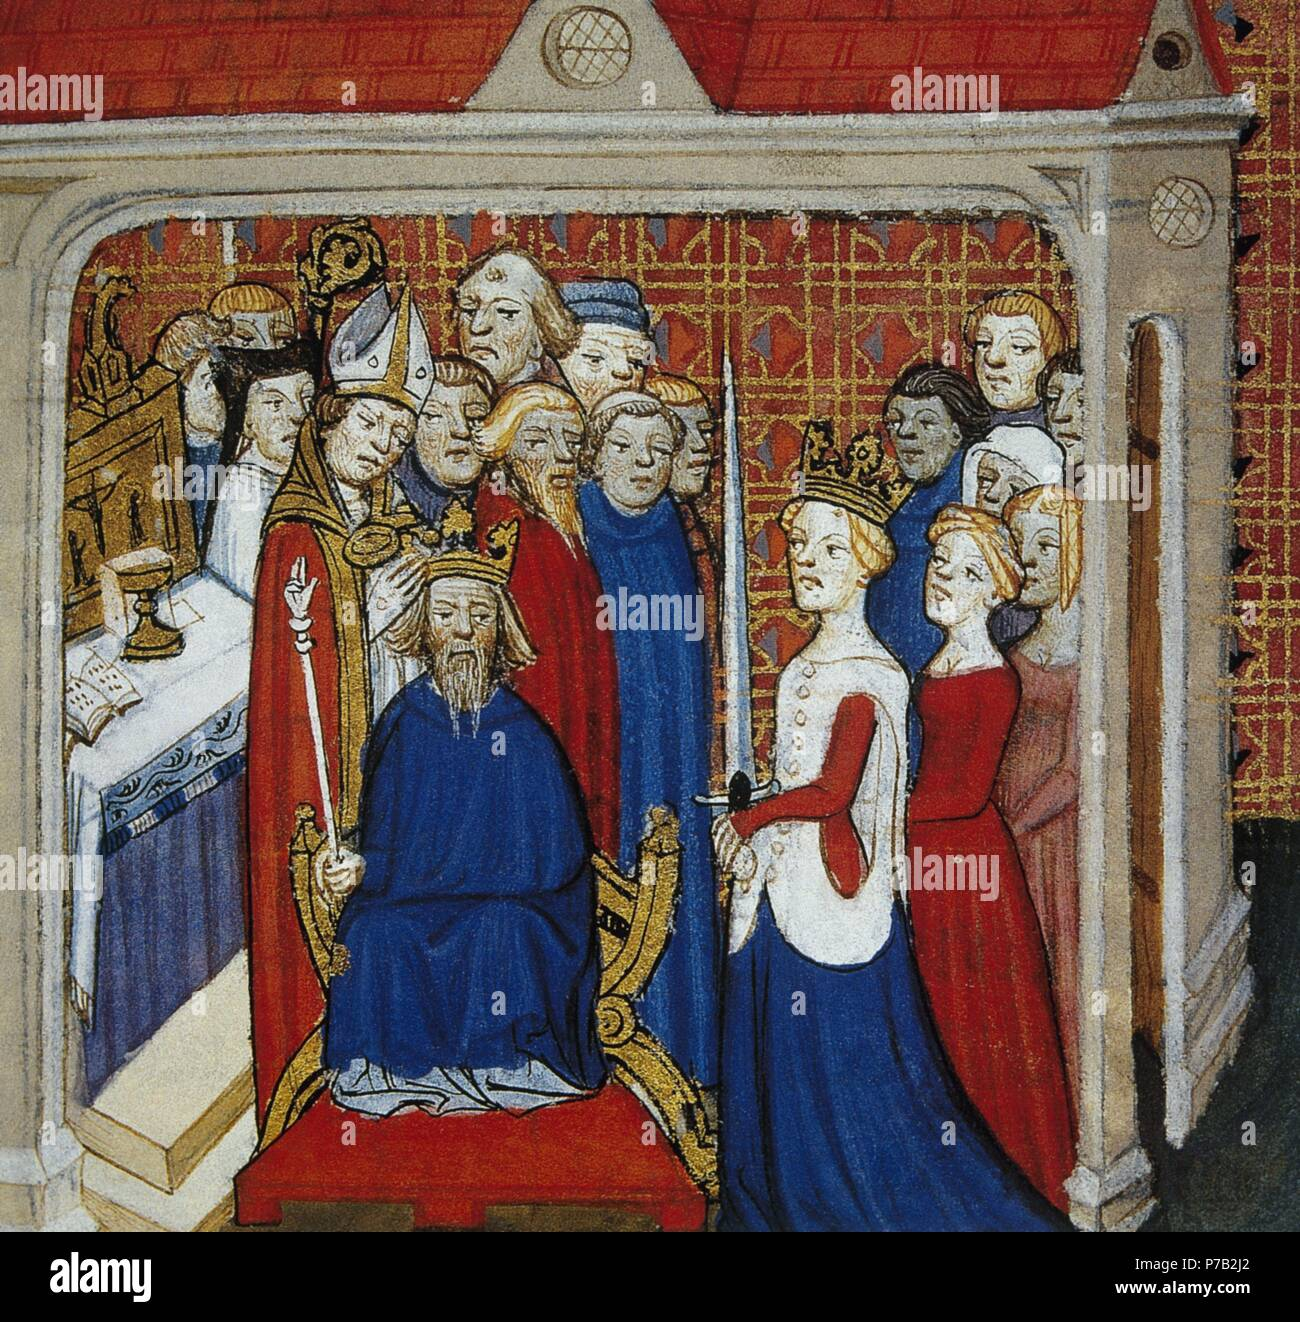 Louis the Stammerer (846-879). King of Western France. Miniature depicting the coronation of Louis II. 14th century. Conde Museum. Chantilly Castle. France. - Stock Image